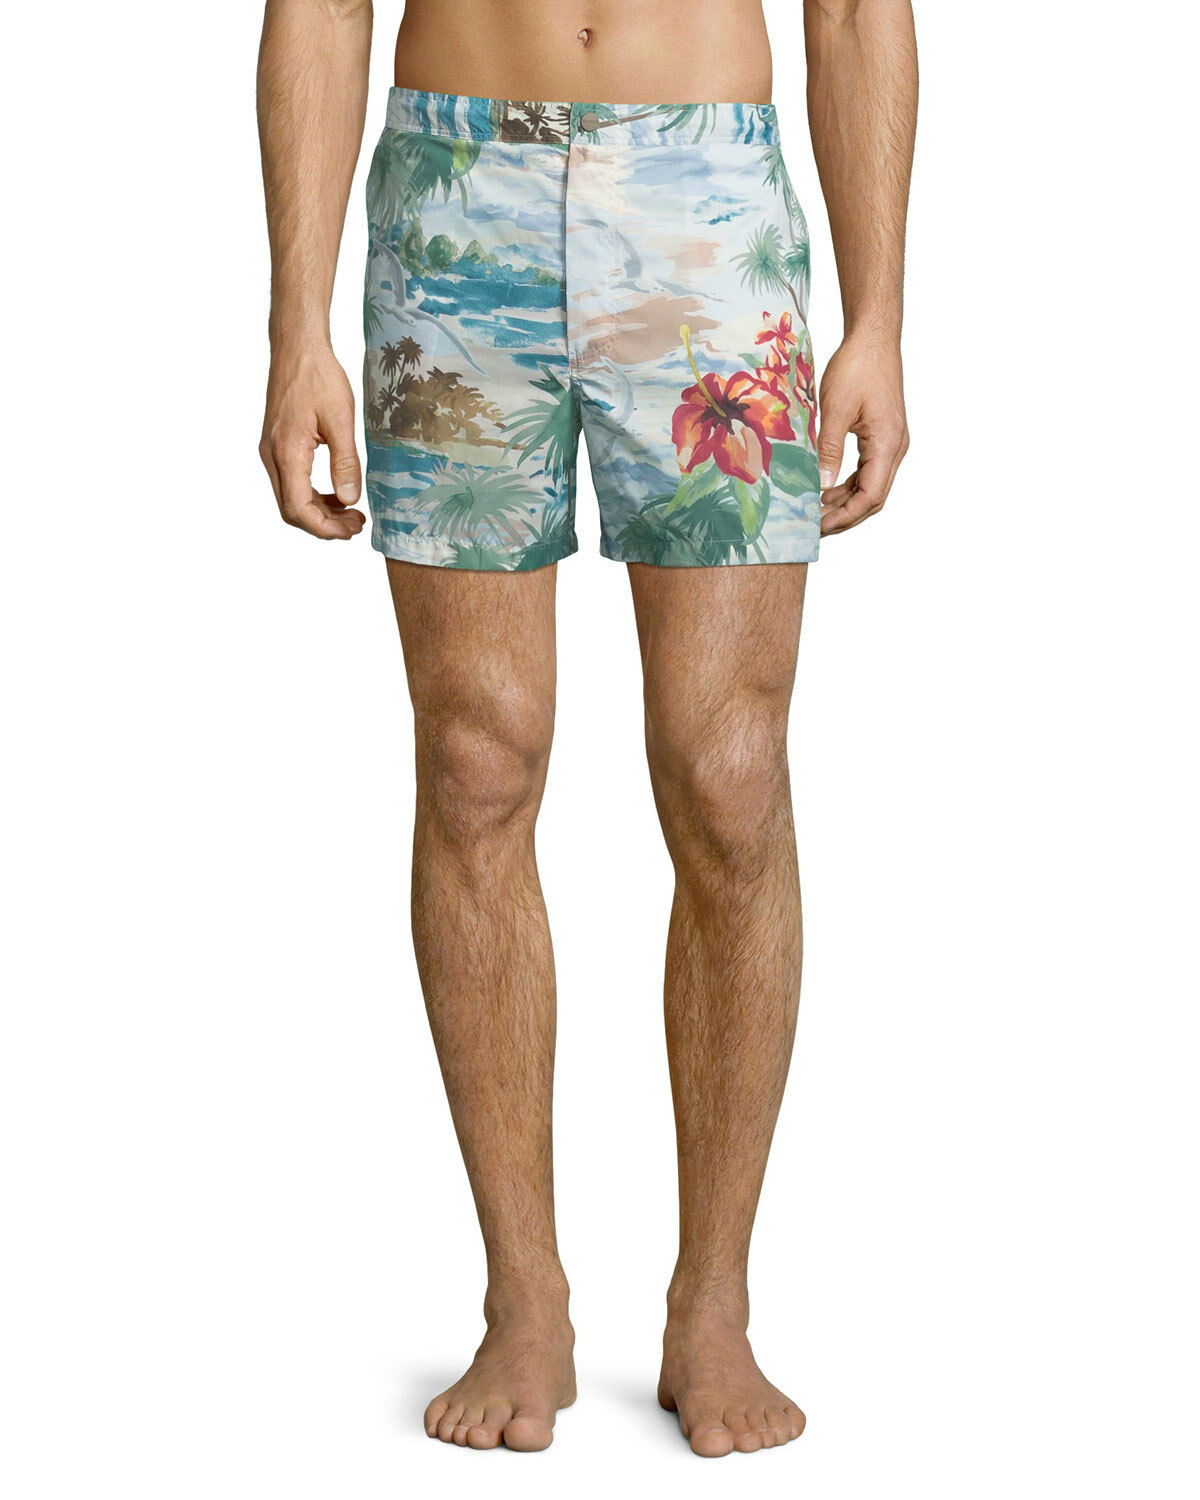 NEW VALENTINO WATERCOLOR TROPICAL-PRINT SWIM TRUNKS M ITALY 46 FITS 30-32